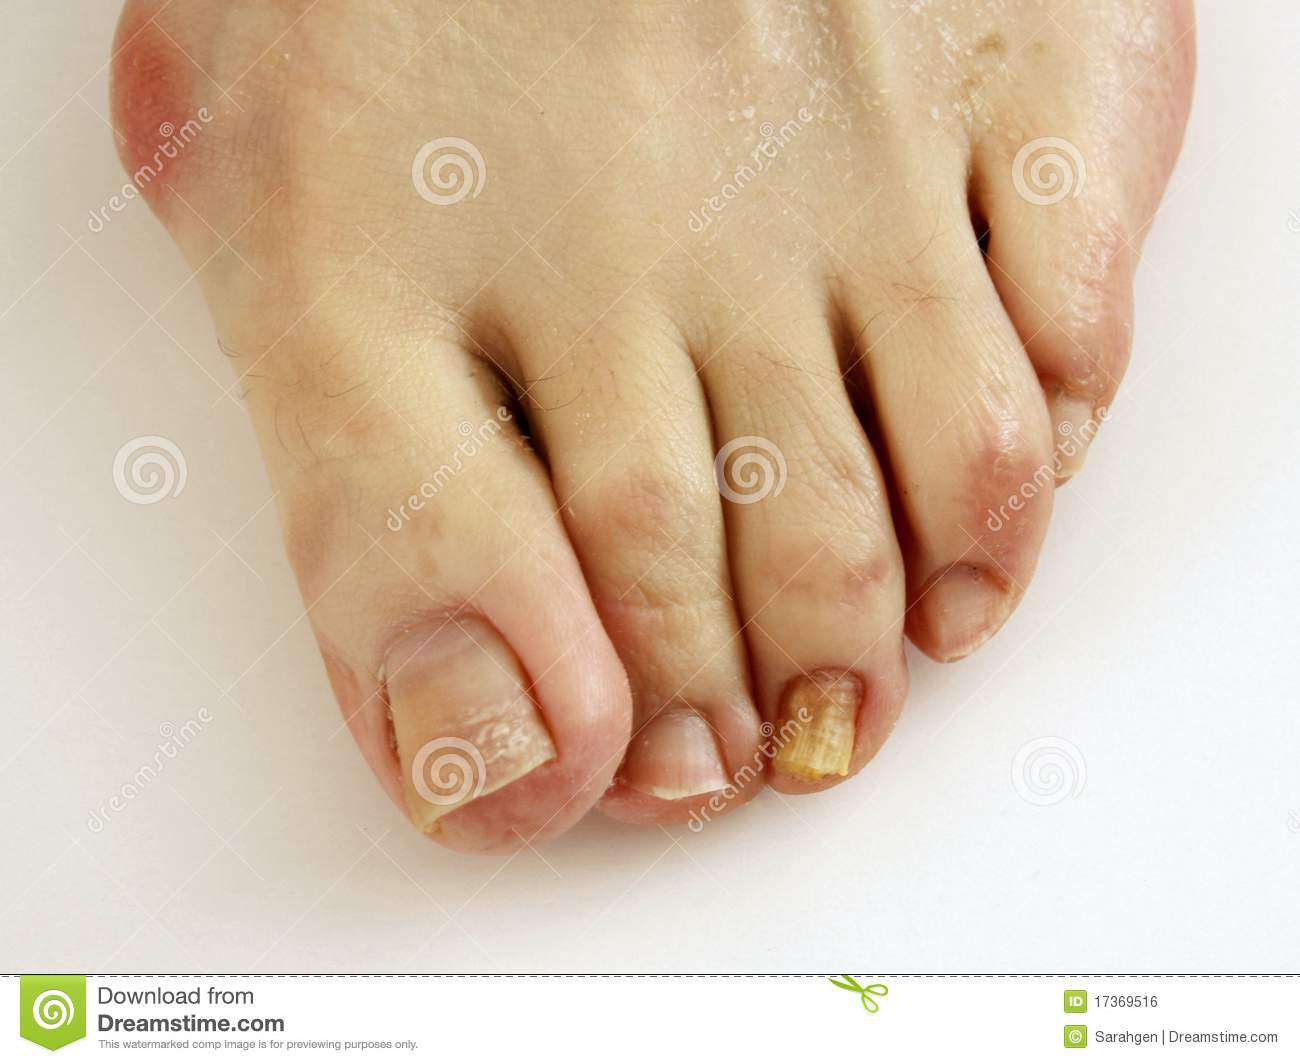 Download Toenail Fungus Stock Photo Image Of Problems